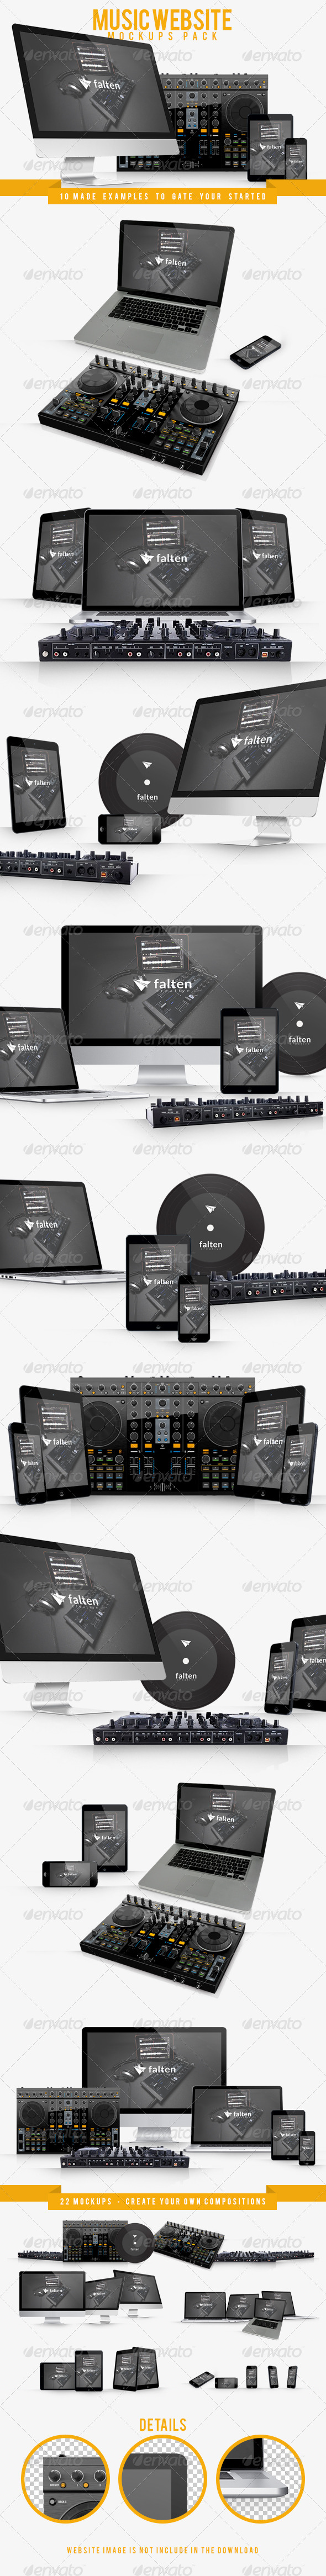 Music Website Mockups Pack - Monitors Displays